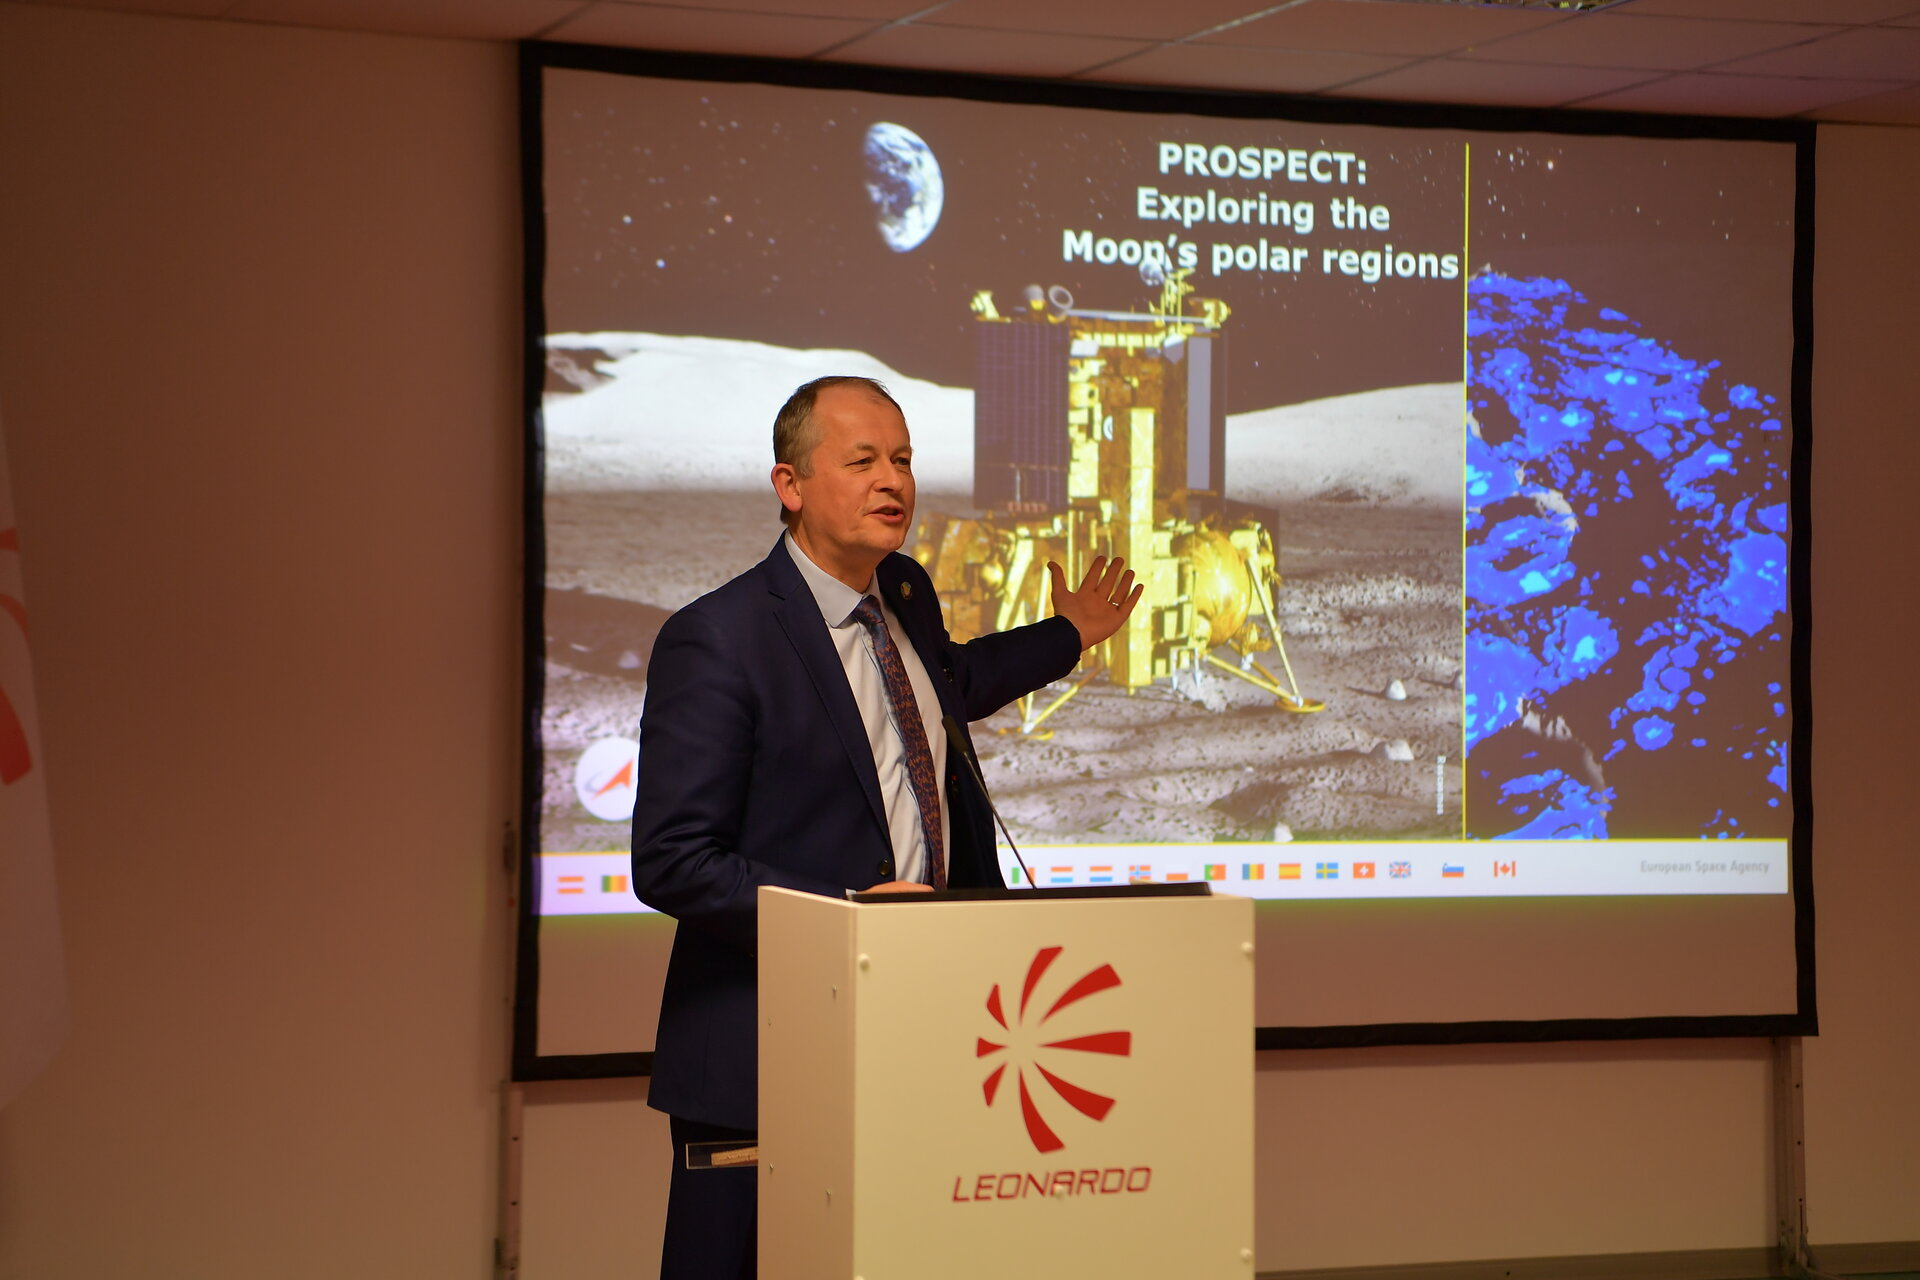 European industry cooperation for the Moon